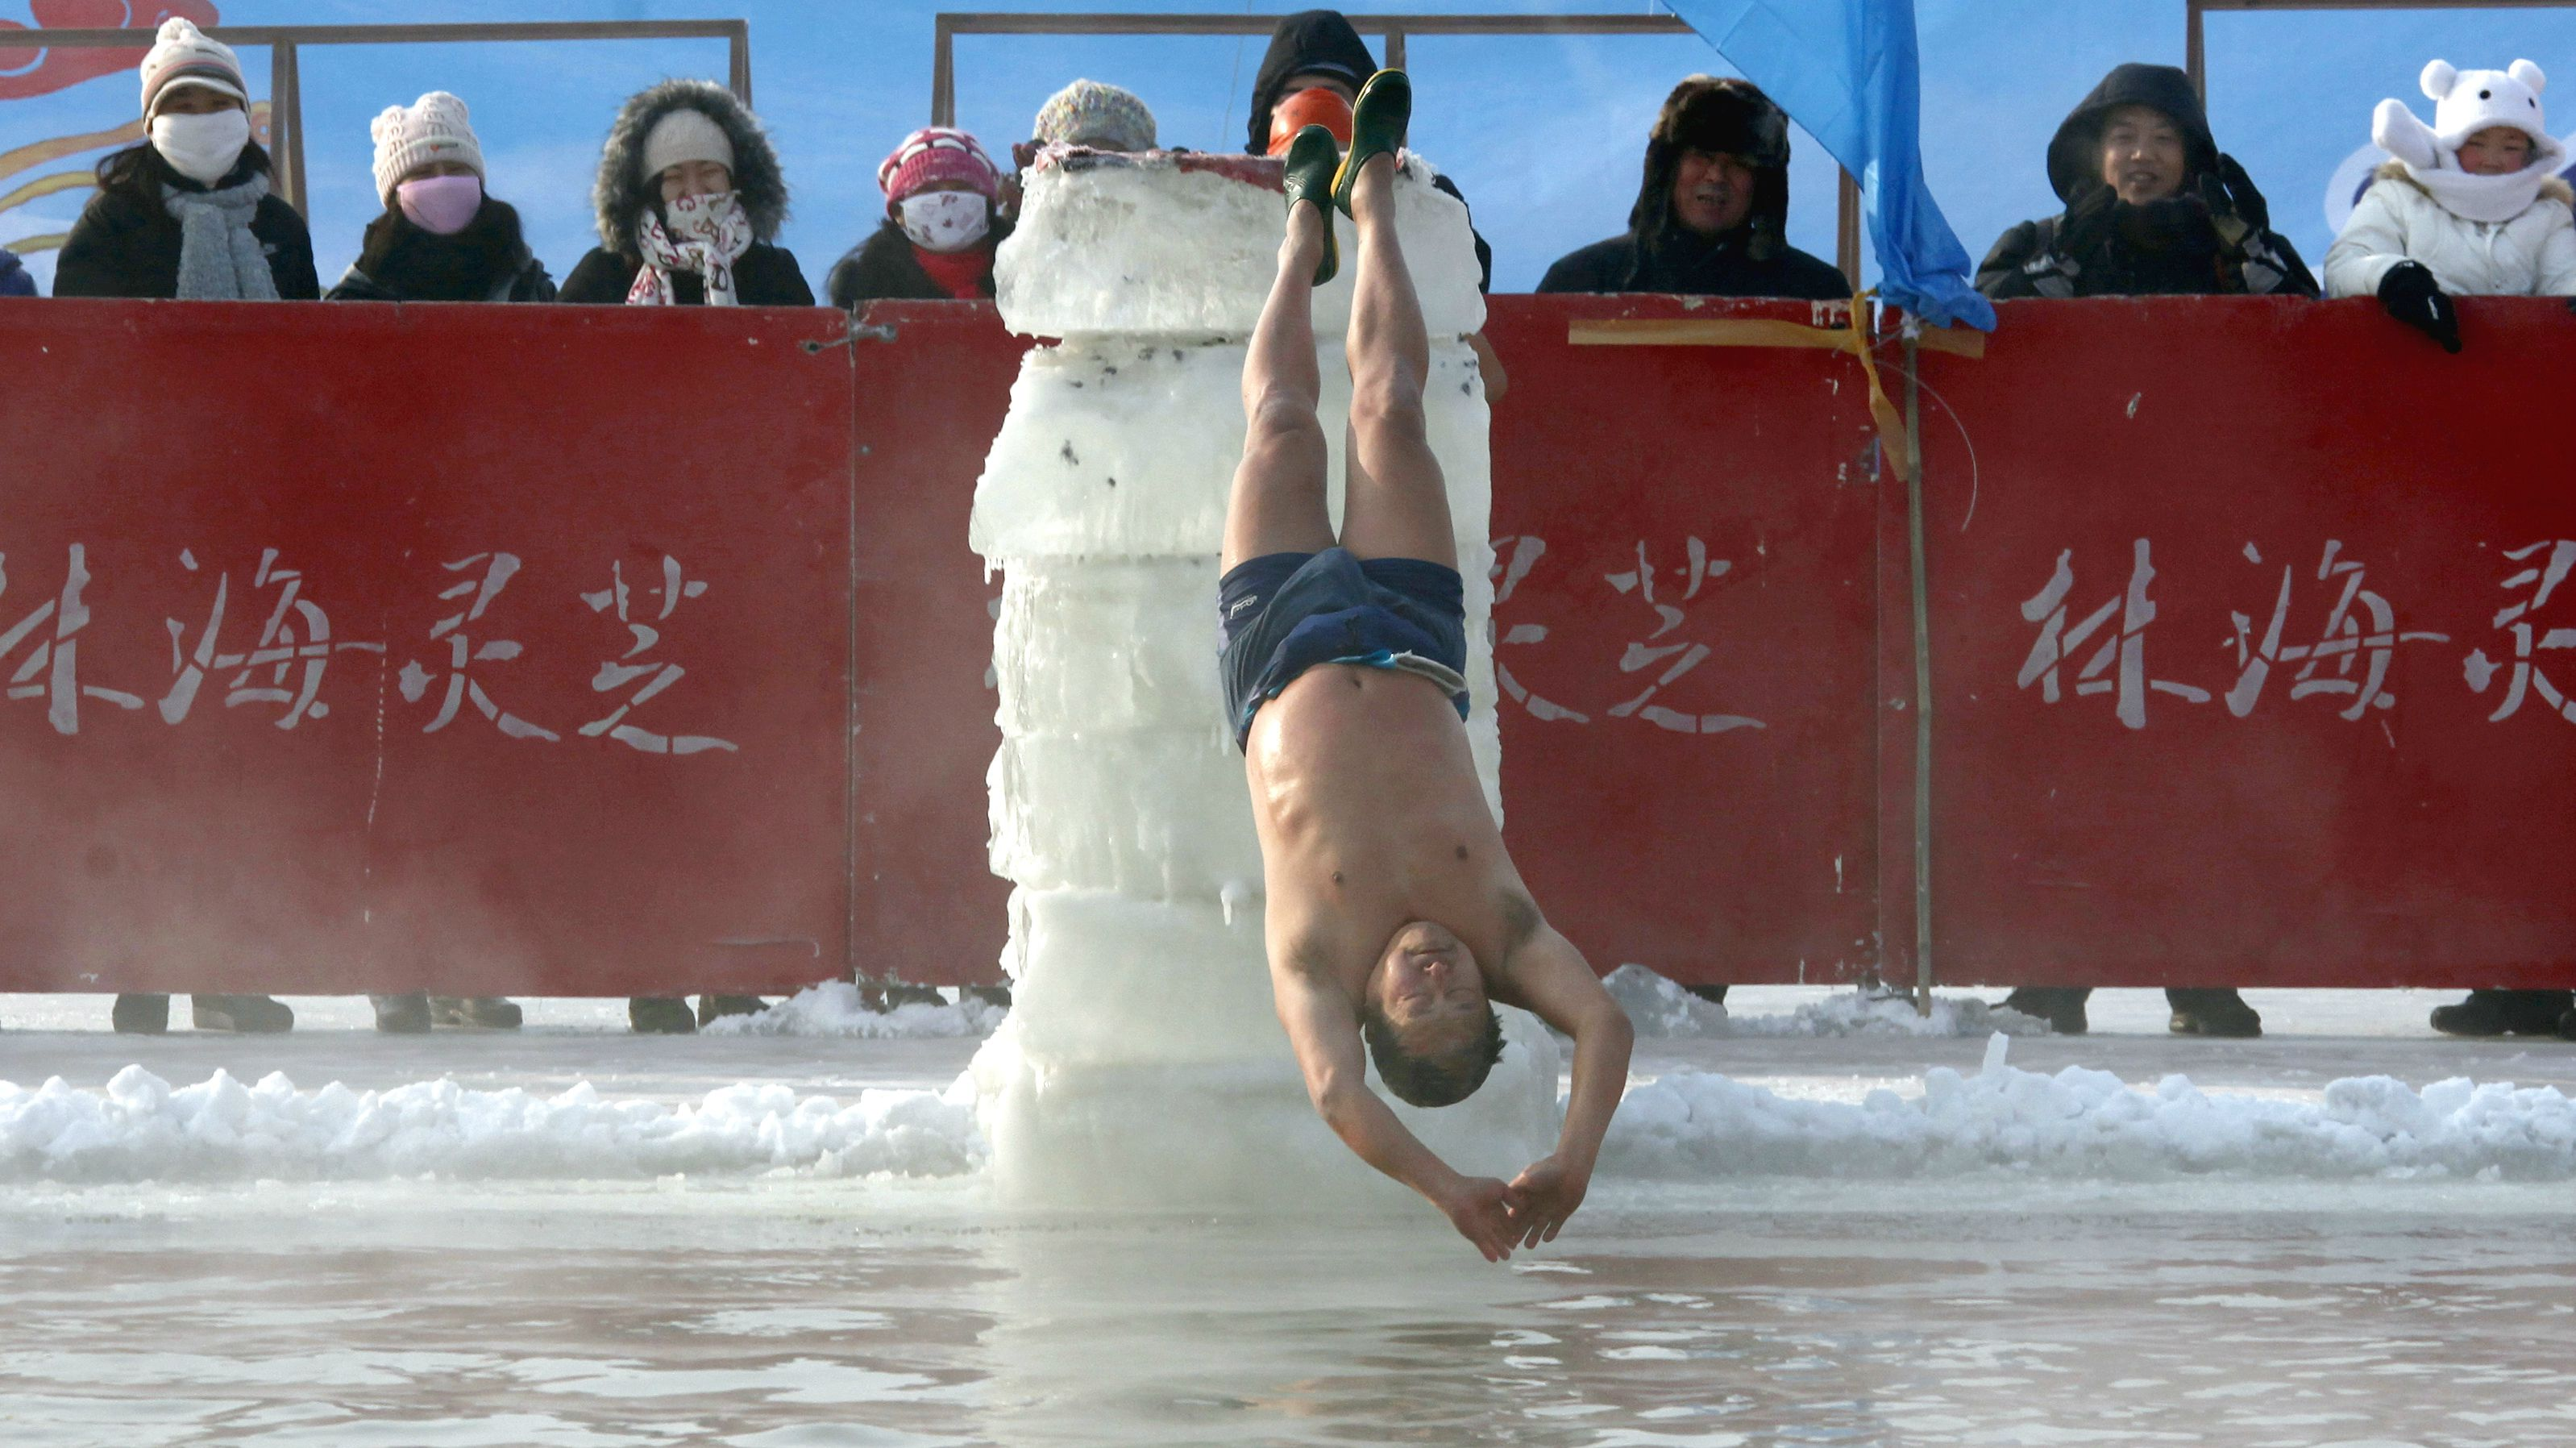 DATE IMPORTED:January 04, 2011A man dives backwards off a ice block into a pool carved out of the thick ice covering the Songhua River in the northern city of Harbin, Heilongjiang province January 4, 2011. The swimming display is part of the Harbin International Ice and Snow Festival which will be officially launched on January 5. REUTERS/David Gray